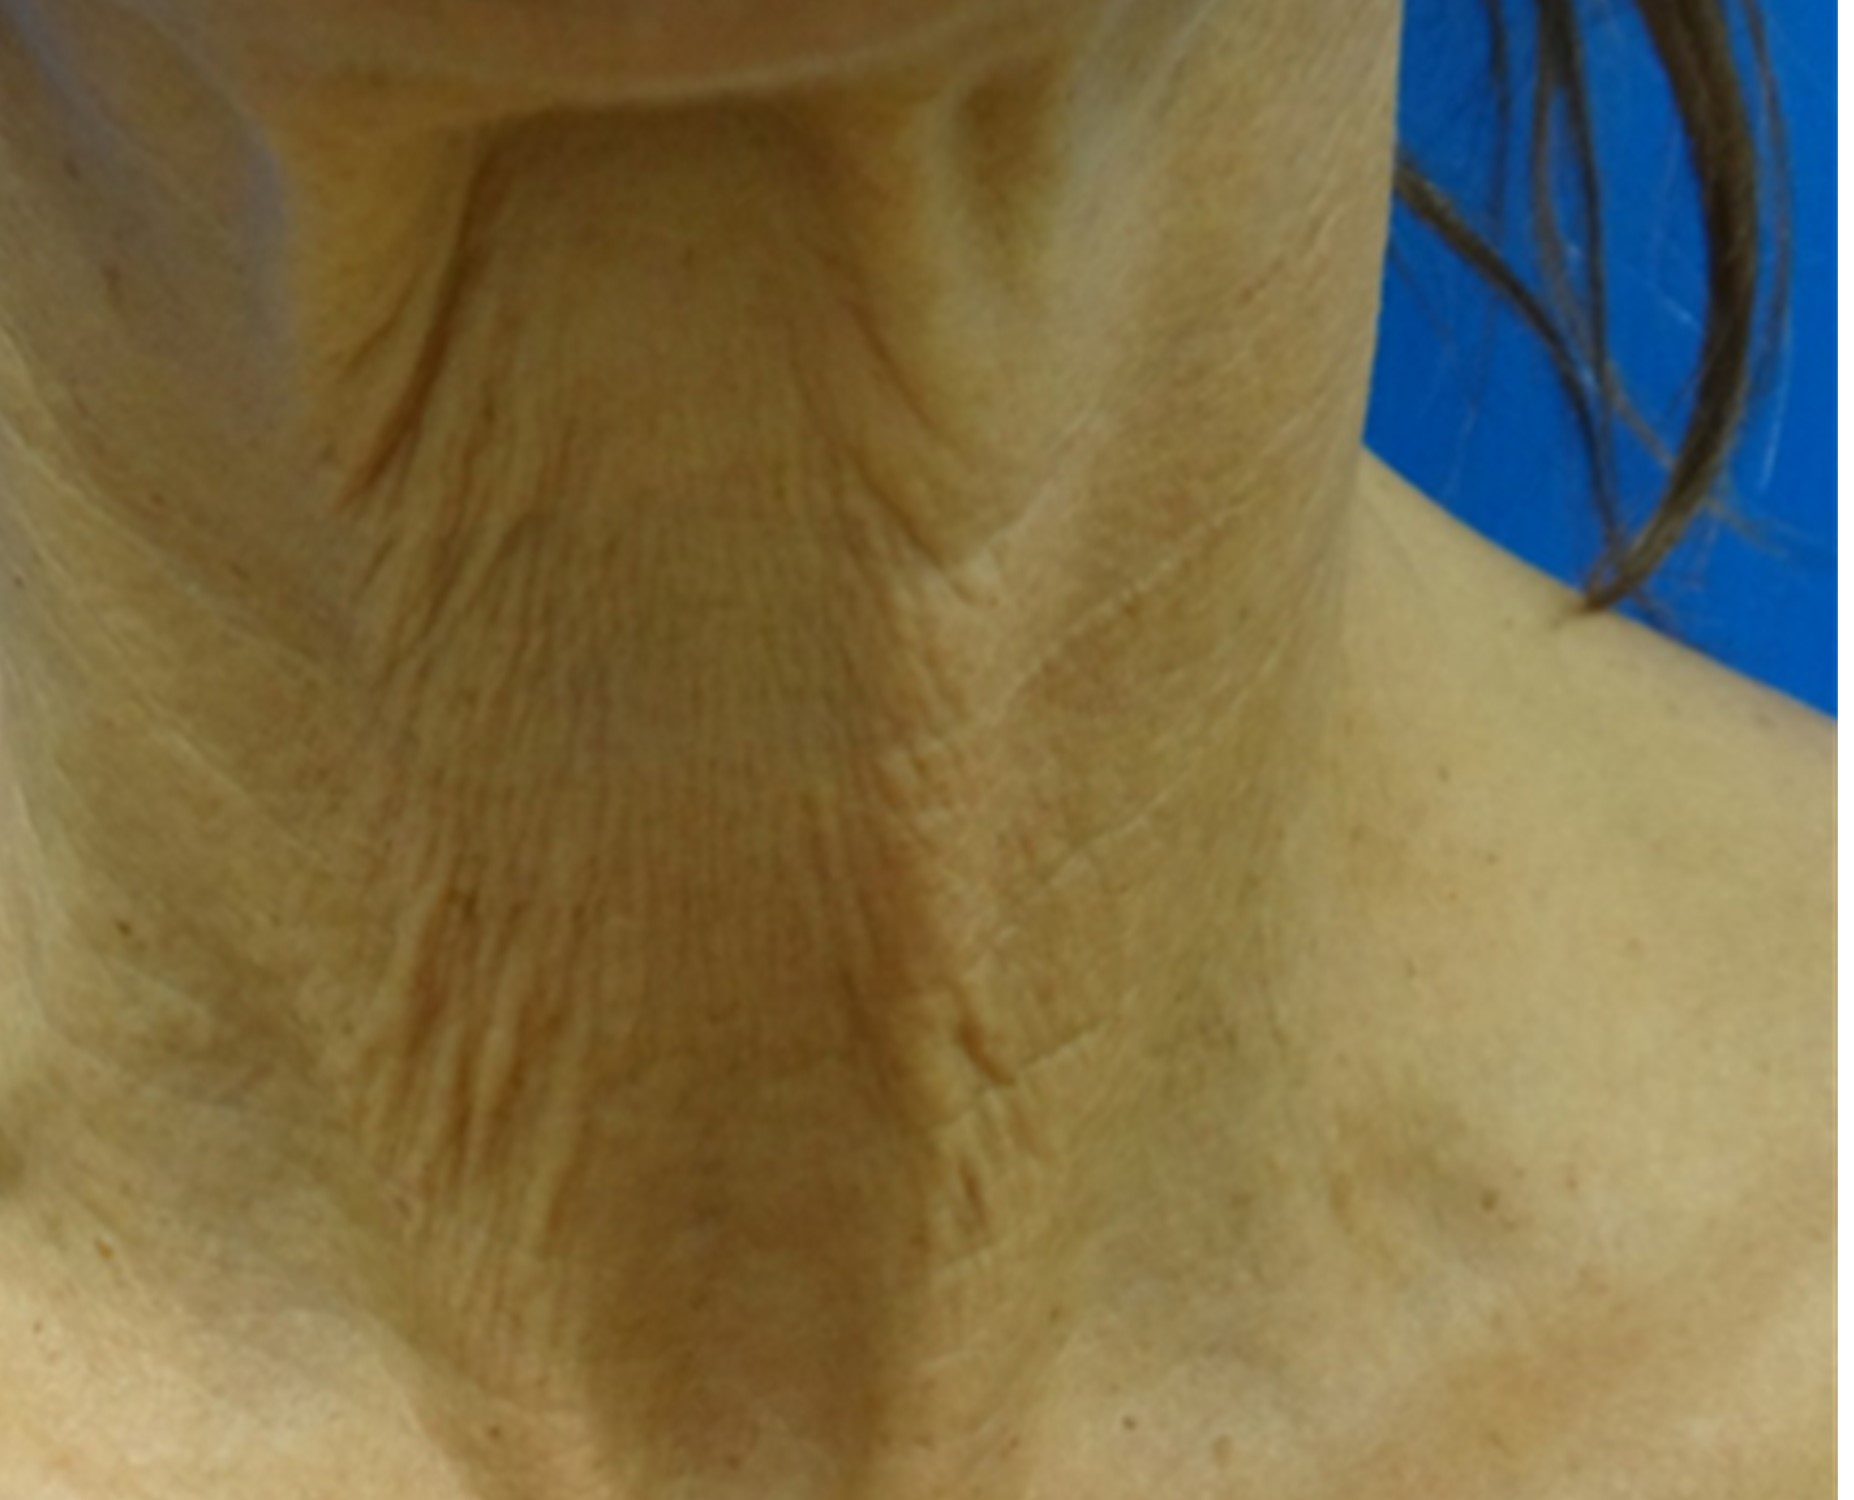 Clearlift Treatment